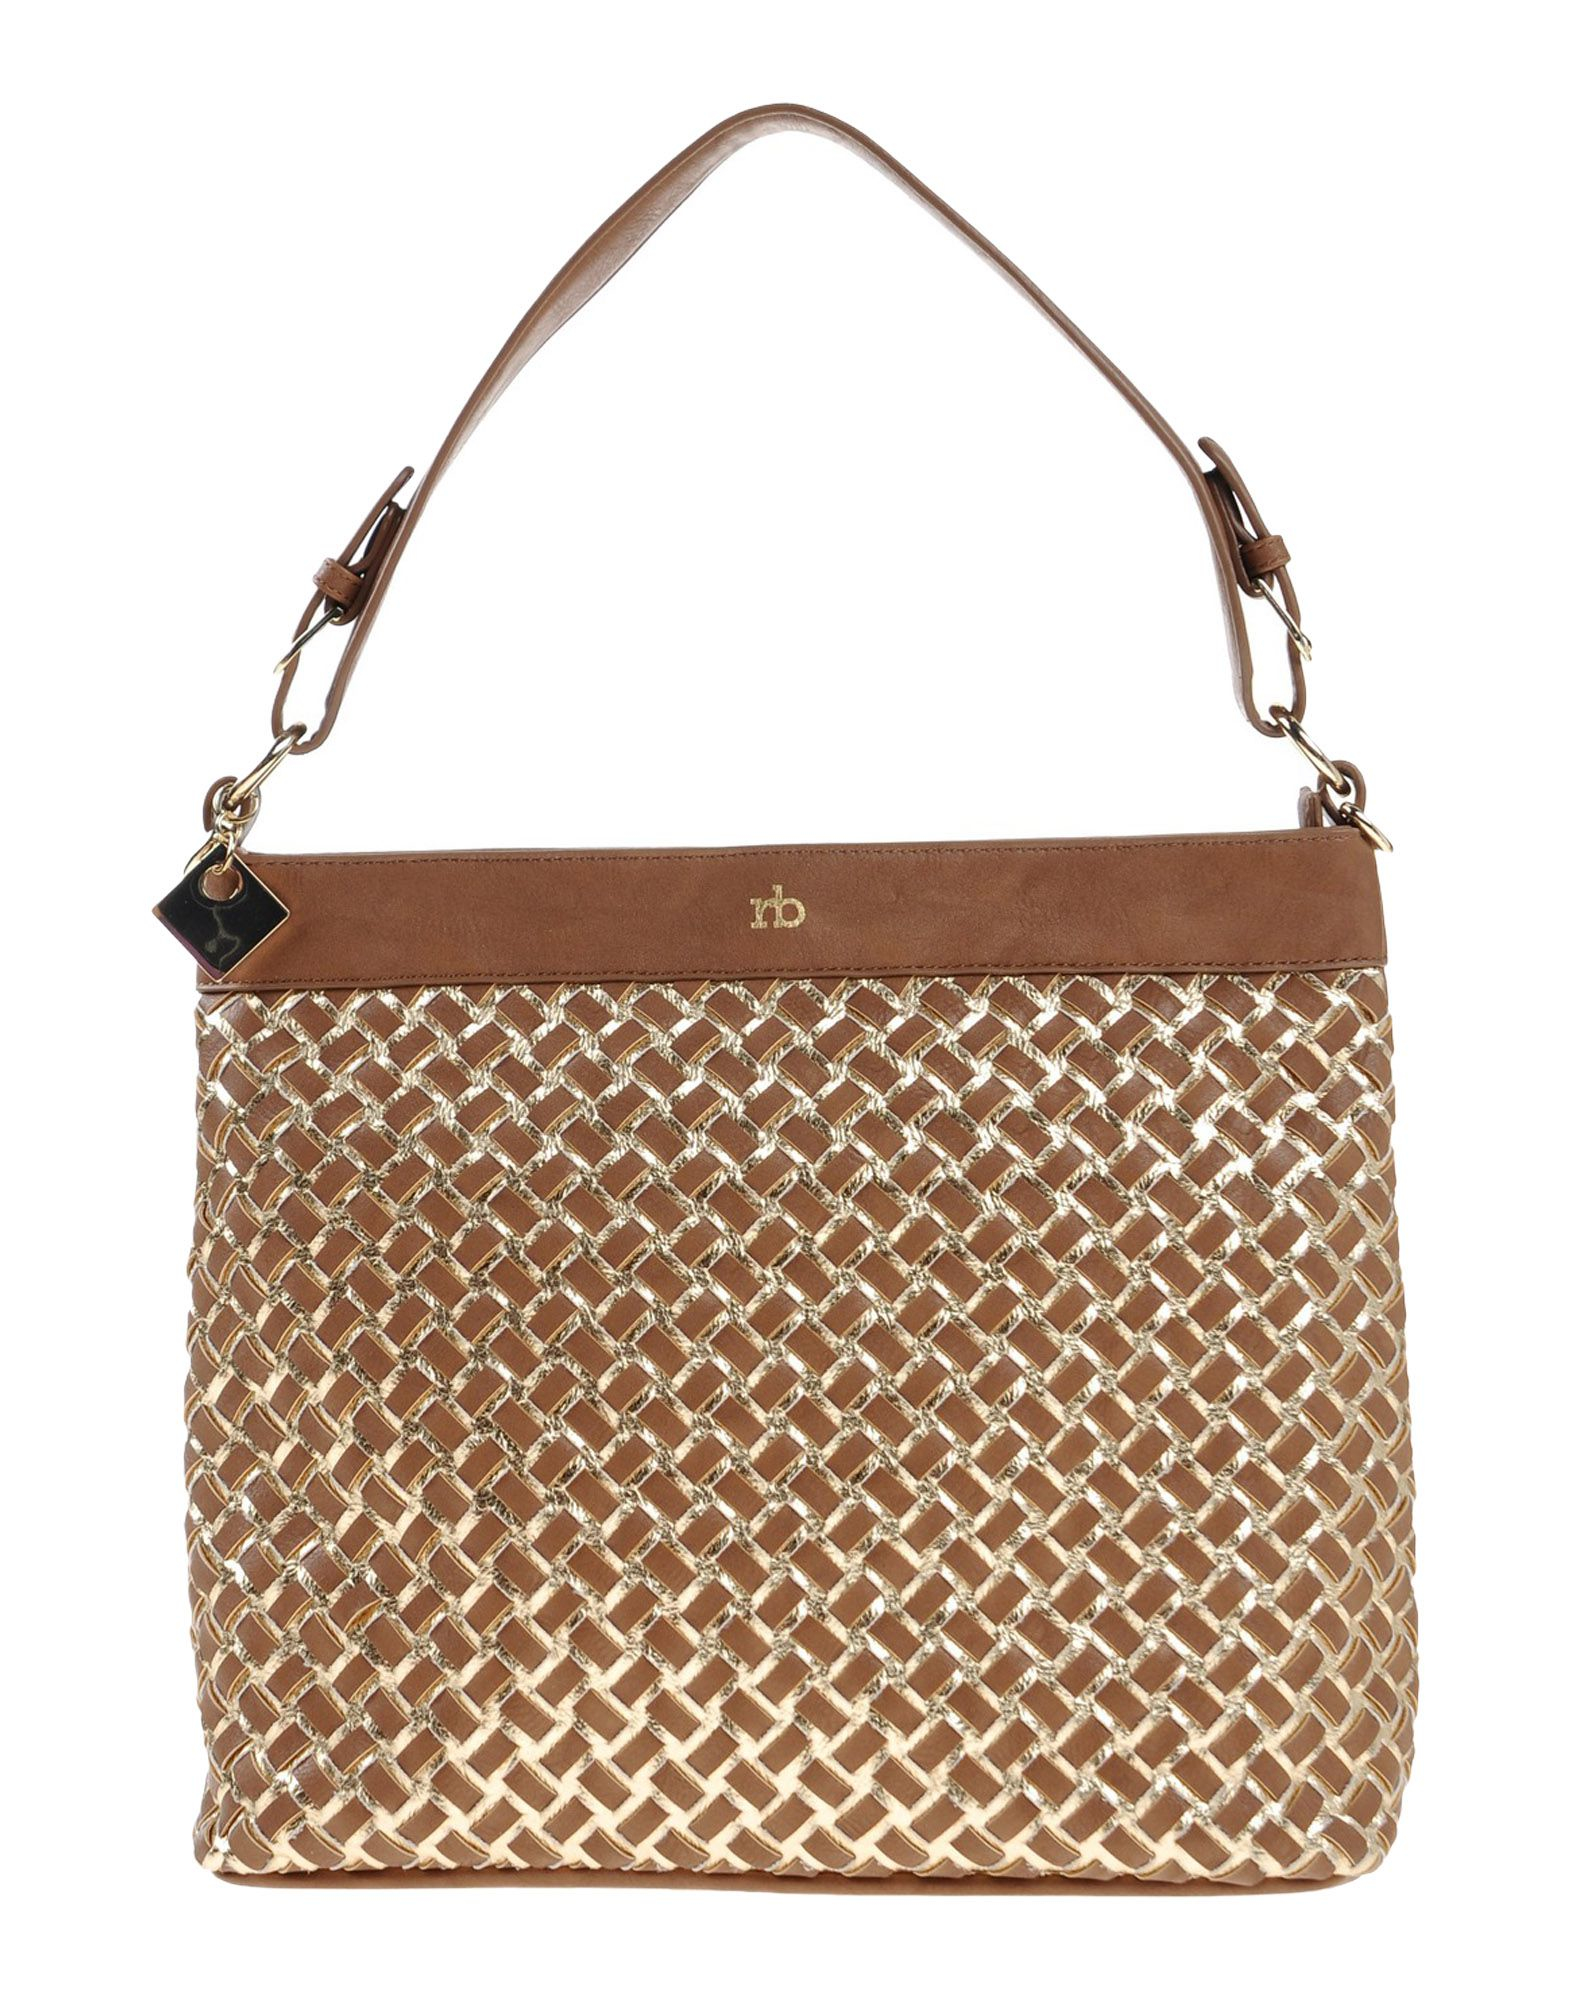 Roccobarocco Handbag in Natural (Khaki)